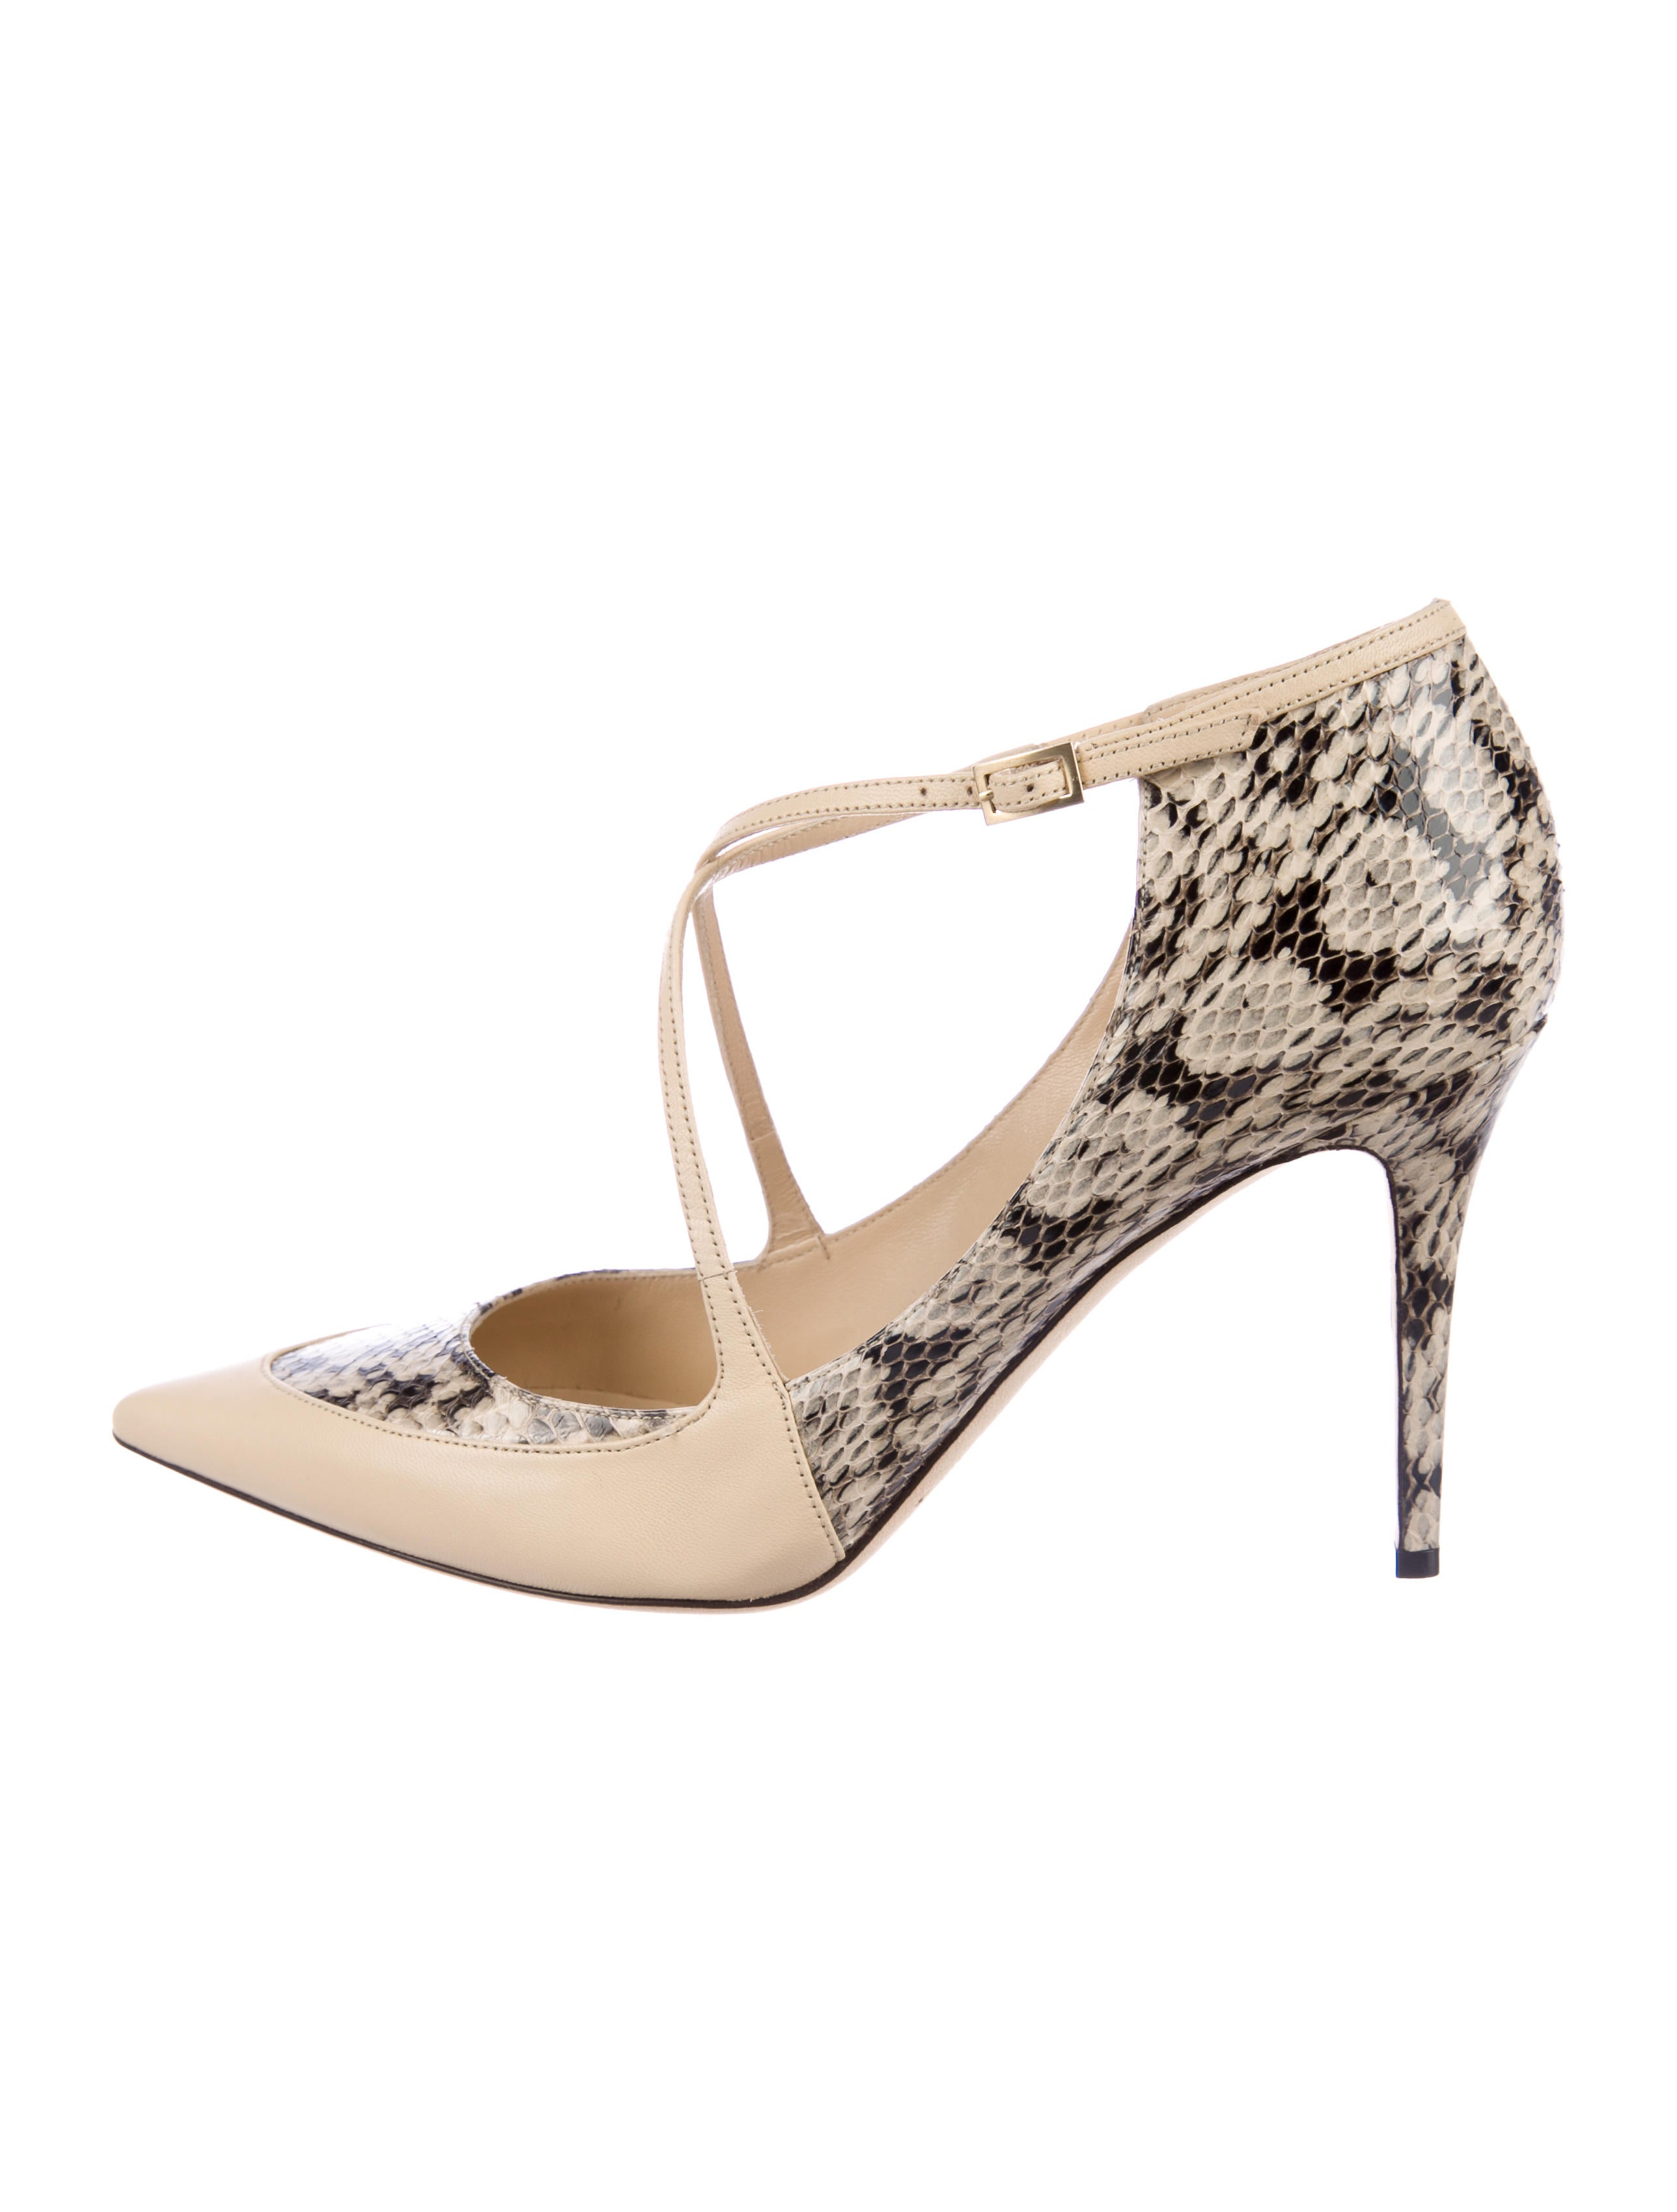 Jimmy Choo Snakeskin Madera Pumps for nice cheap online cheap sale tumblr free shipping from china 3XSbscd